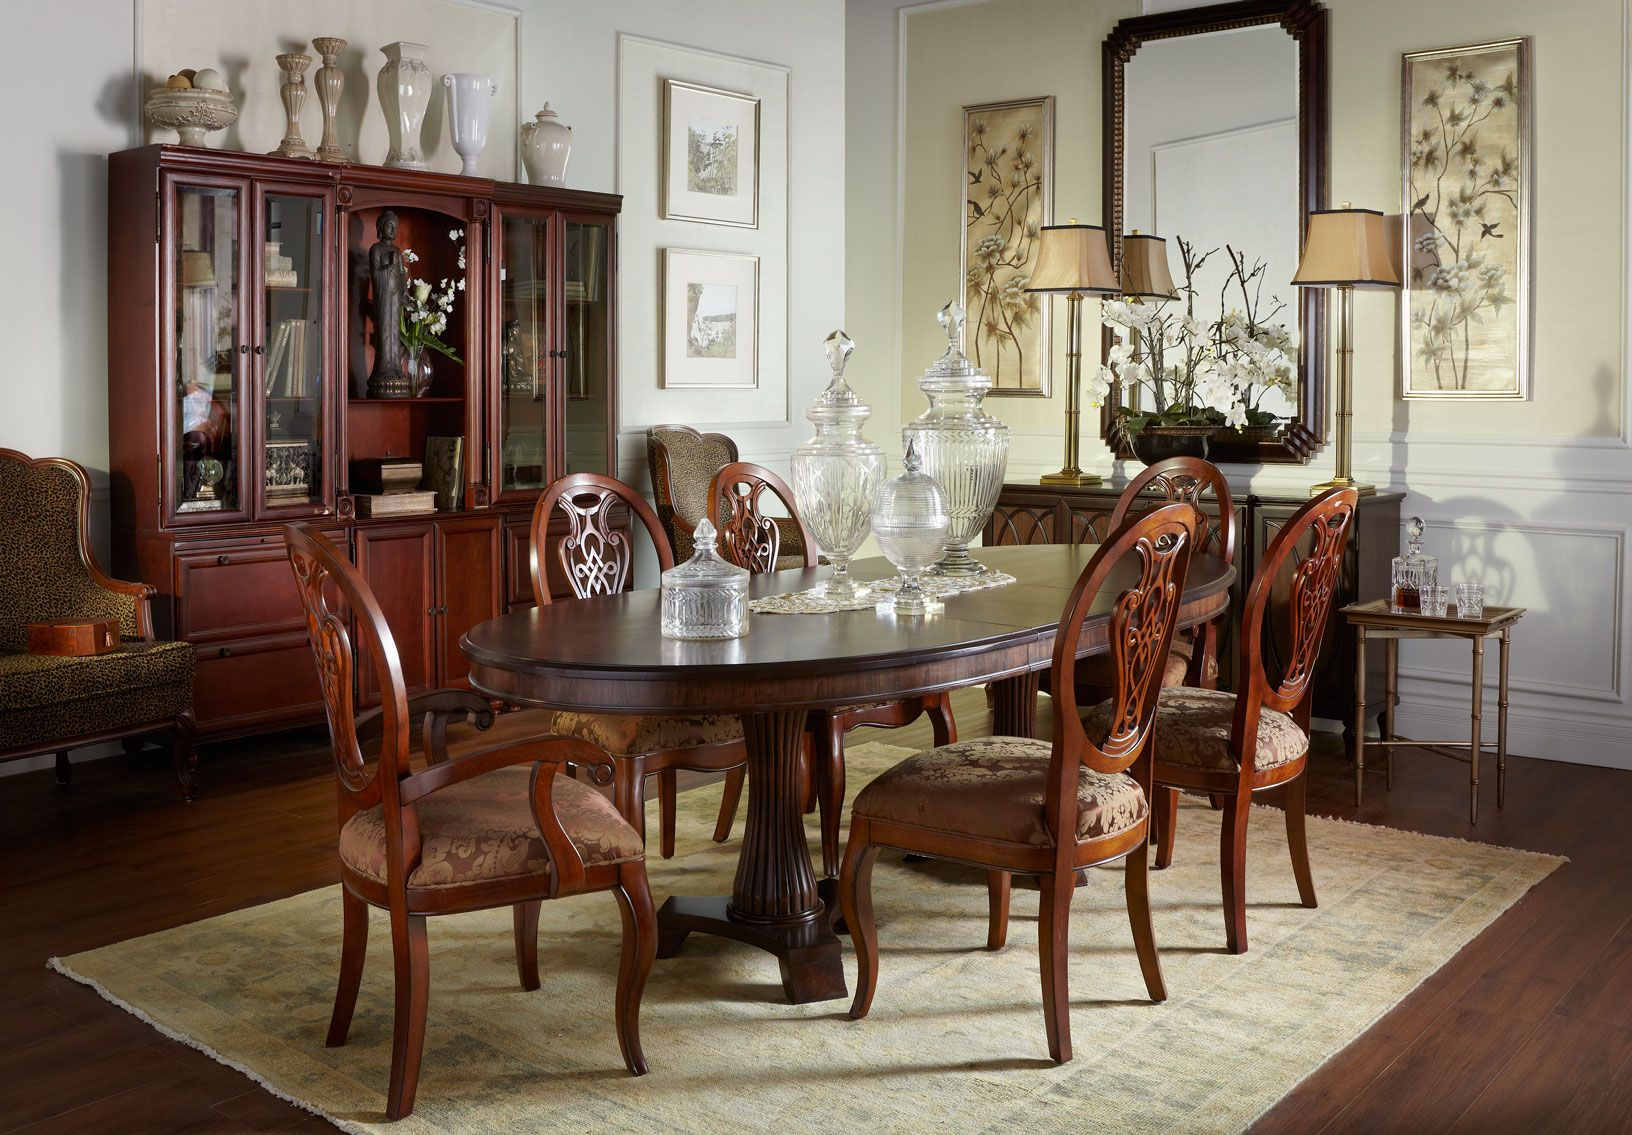 Calais Table Mayfair Chairs  Bombay Canada  Home Decor  Dining Table Dining room